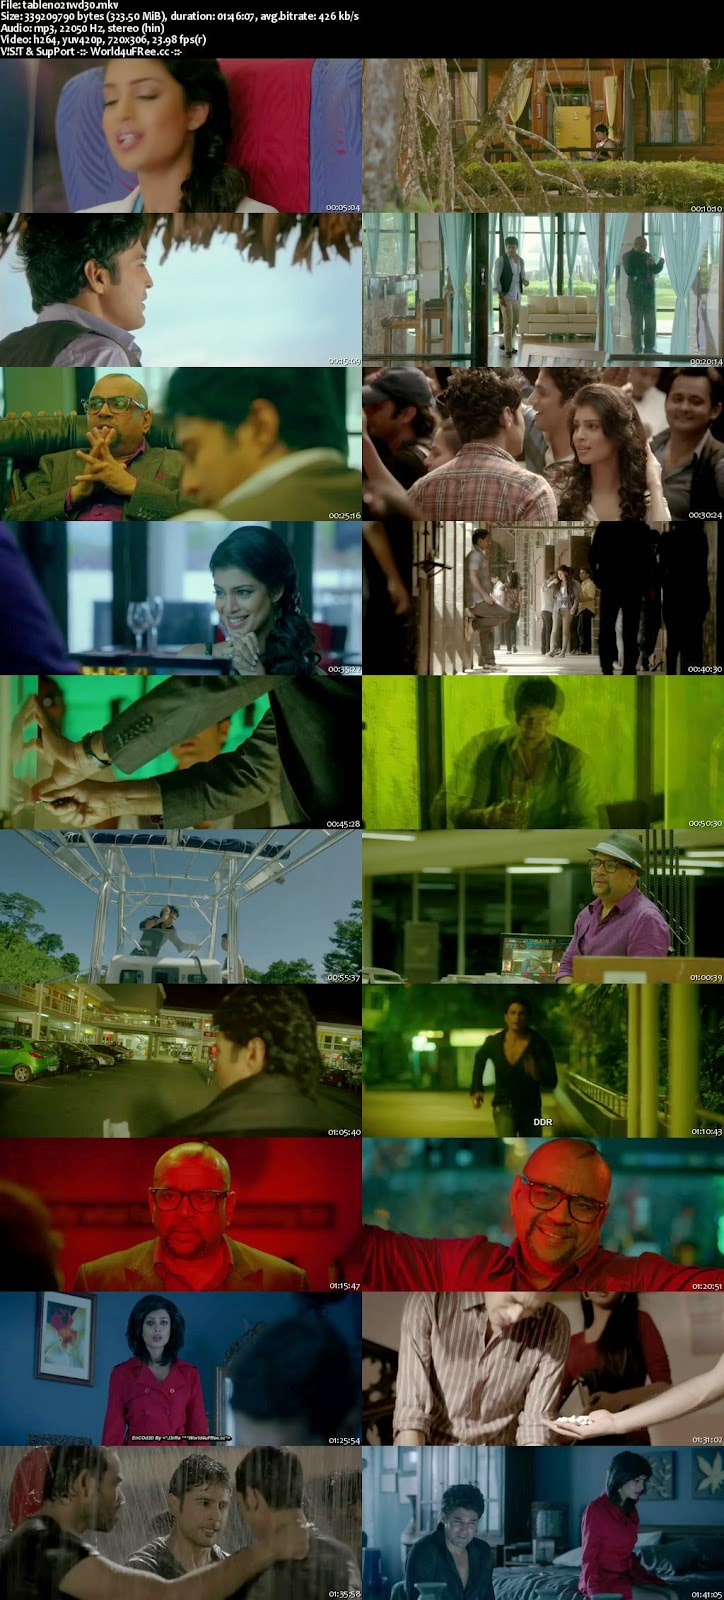 Table no 21 2013 hindi movie download world4ufree org for Table no 21 movie